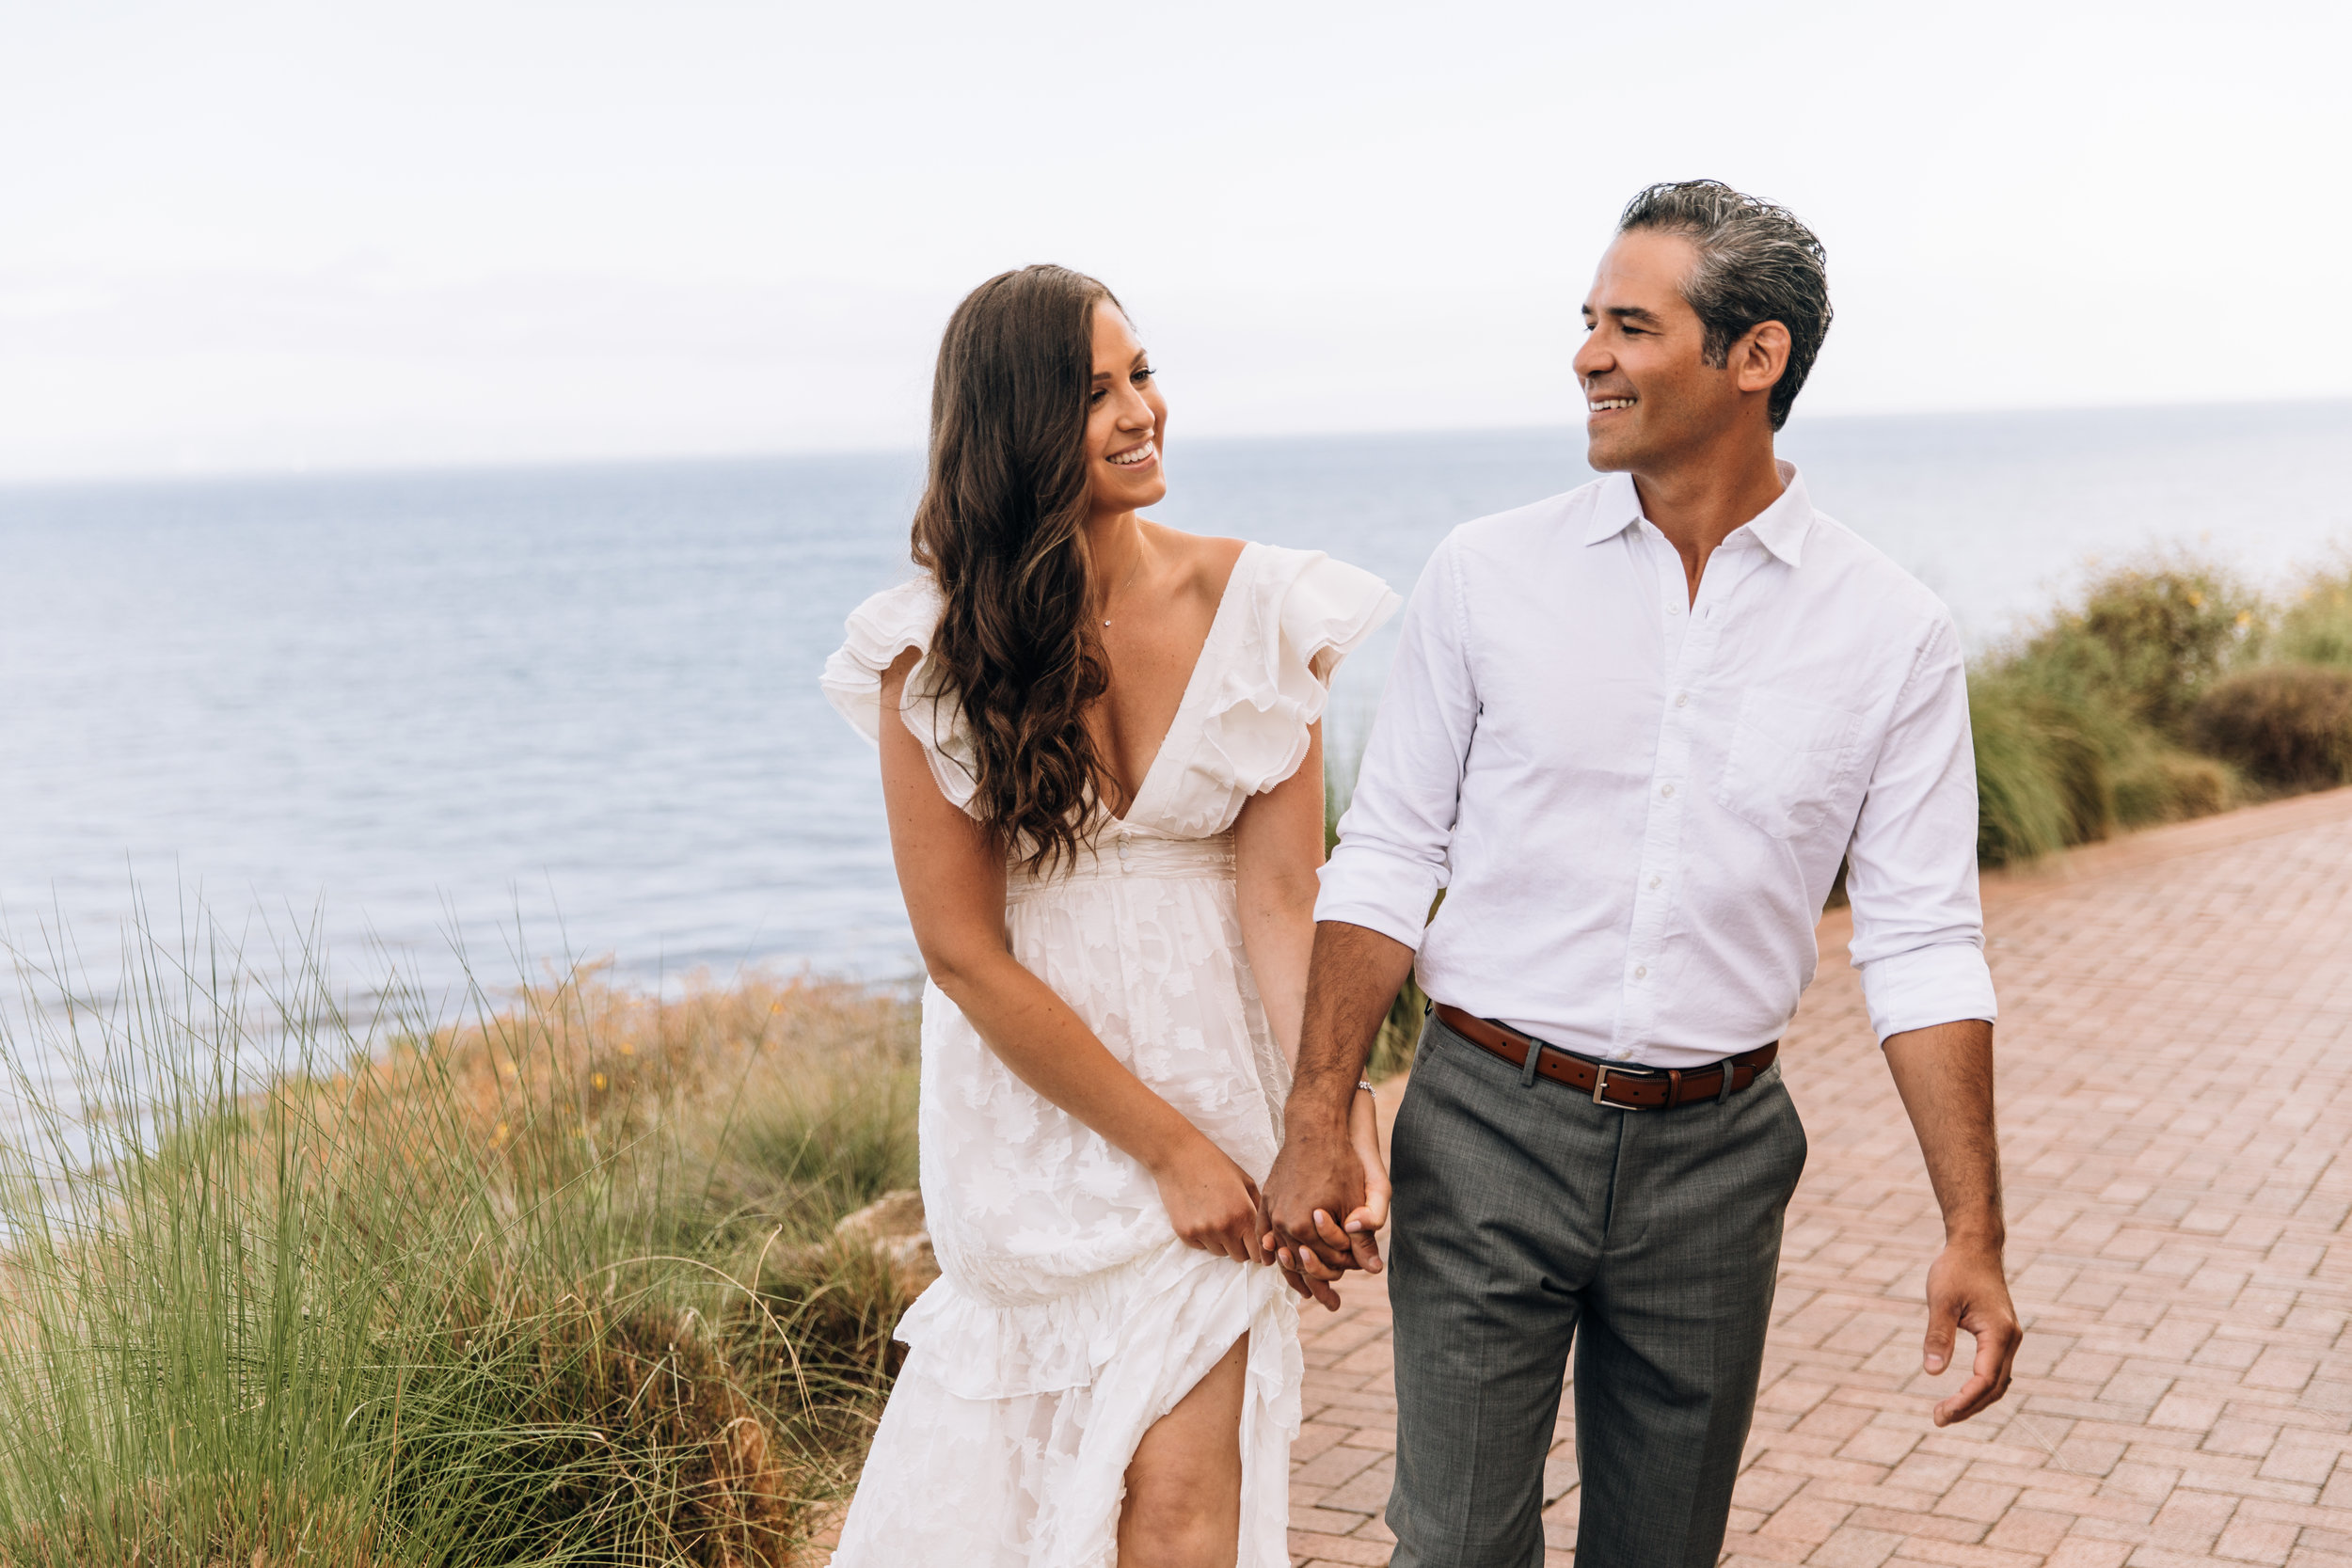 Palos Verdes wedding photographer, SoCal wedding photographer, Southern California wedding photographer, Terranea wedding photographer, OC wedding photographer, LA wedding photographer, Terranea